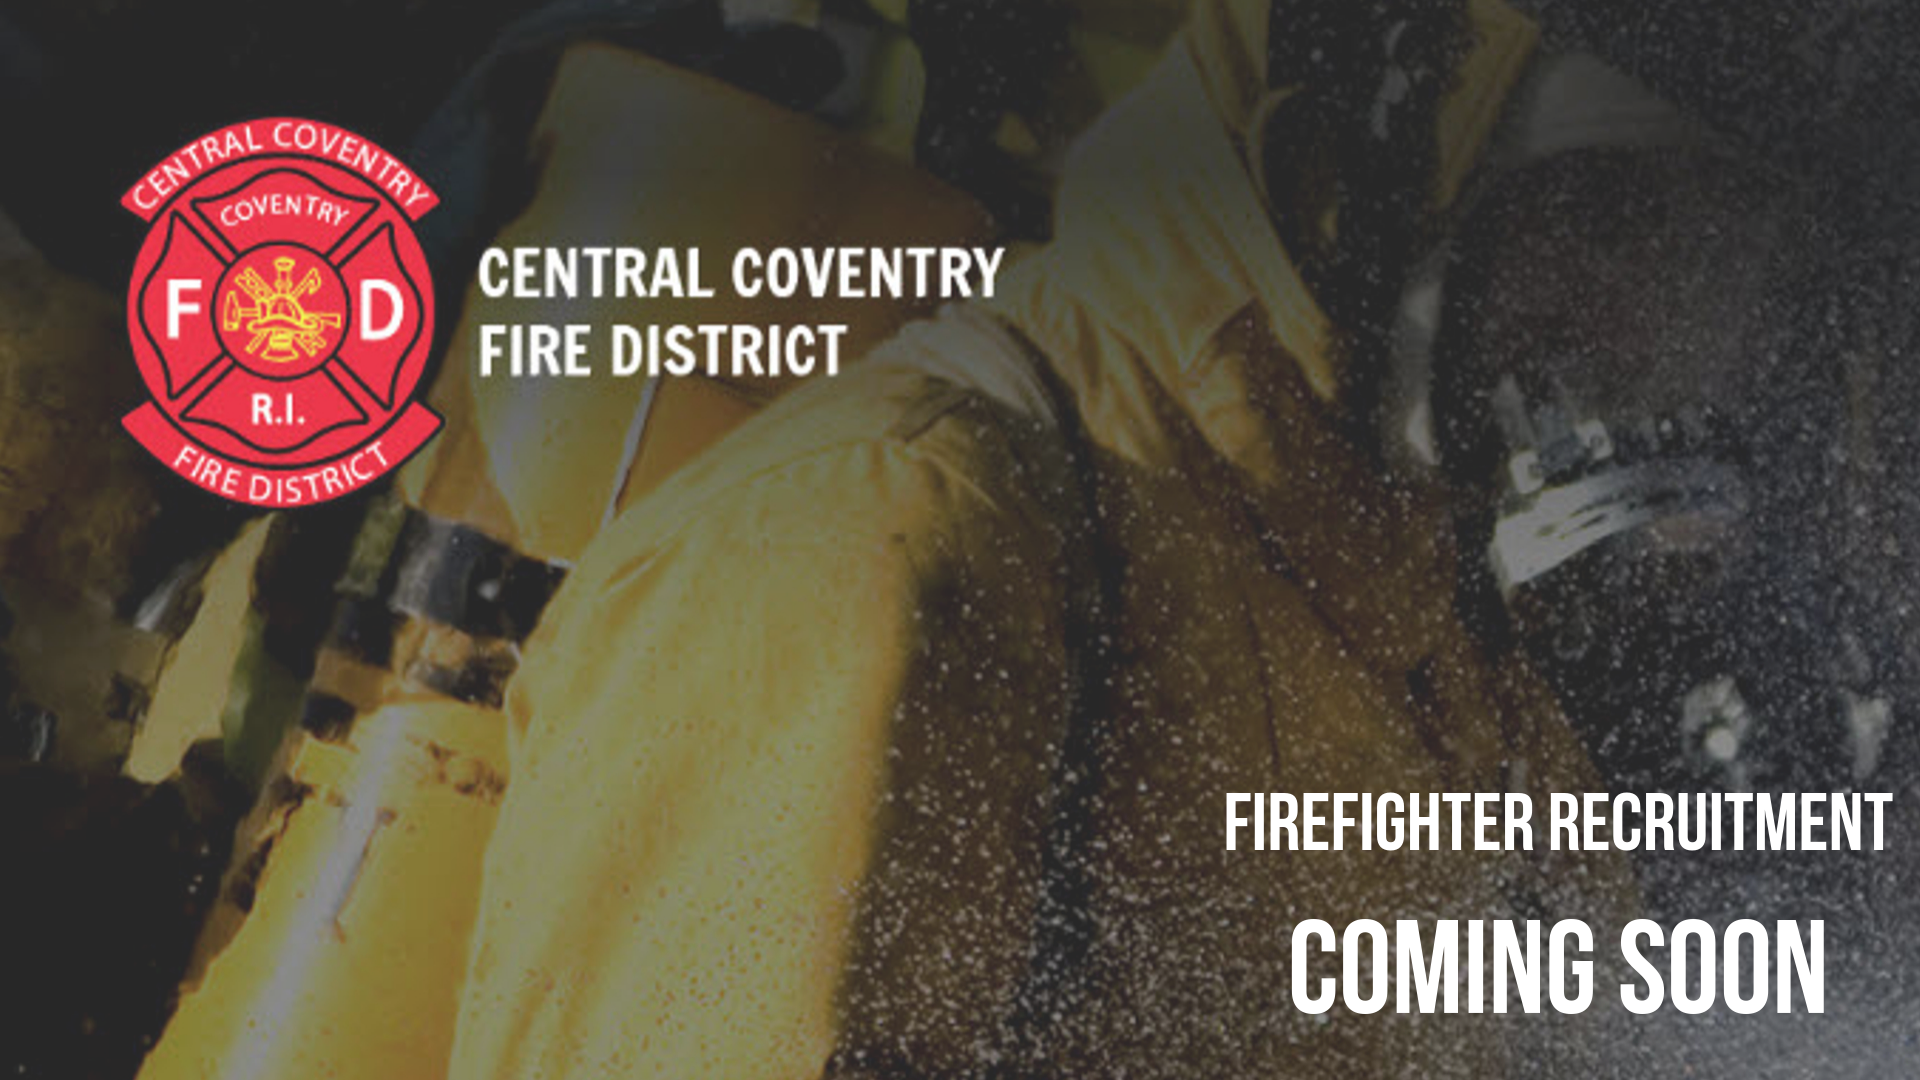 Central Coventry Fire District, RI Public Safety Jobs